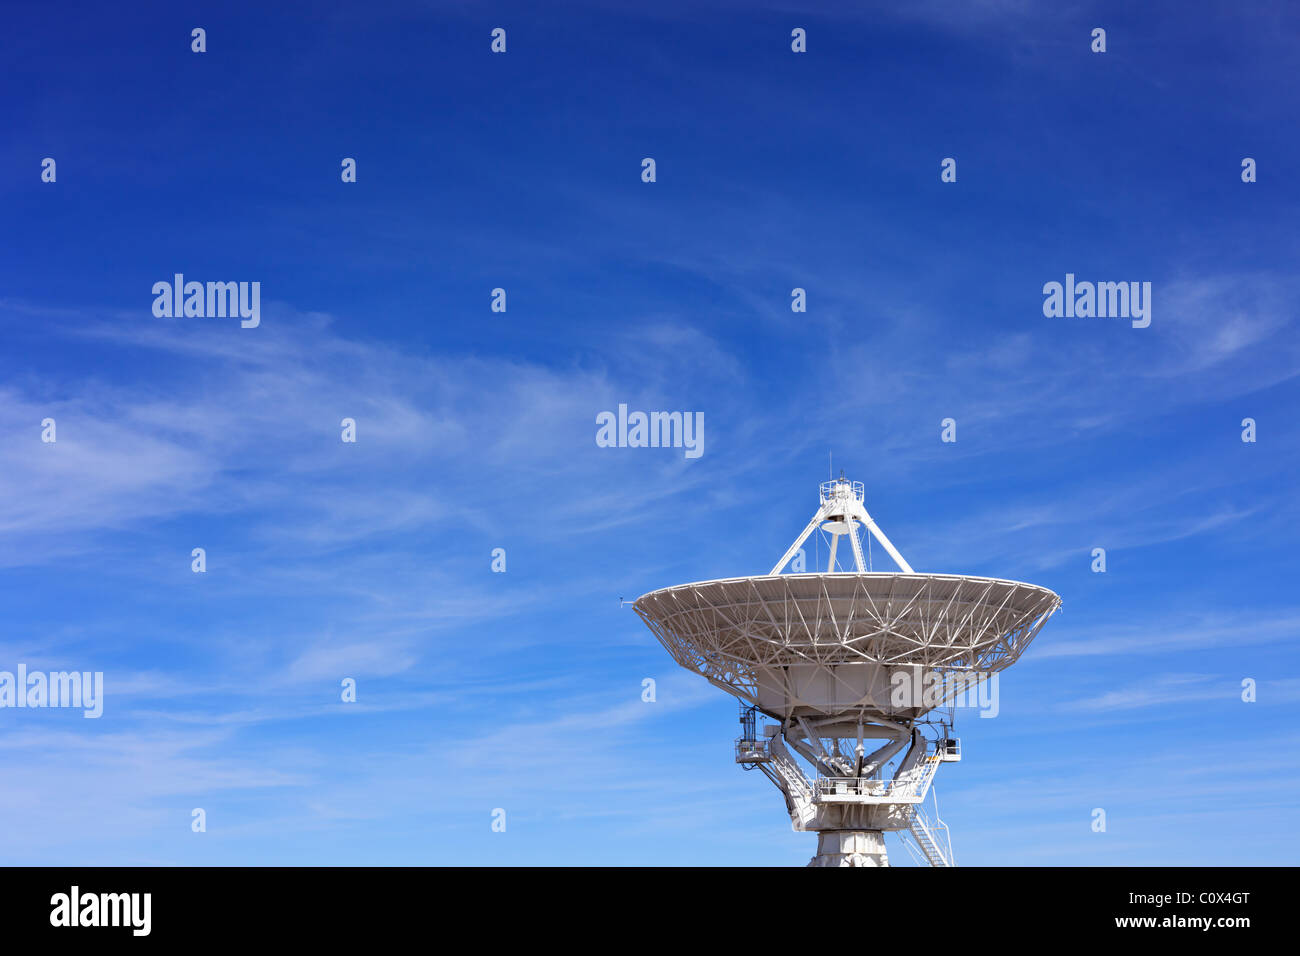 A radio telescope dish in the Very Large Array against blue New Mexico sky. Stock Photo